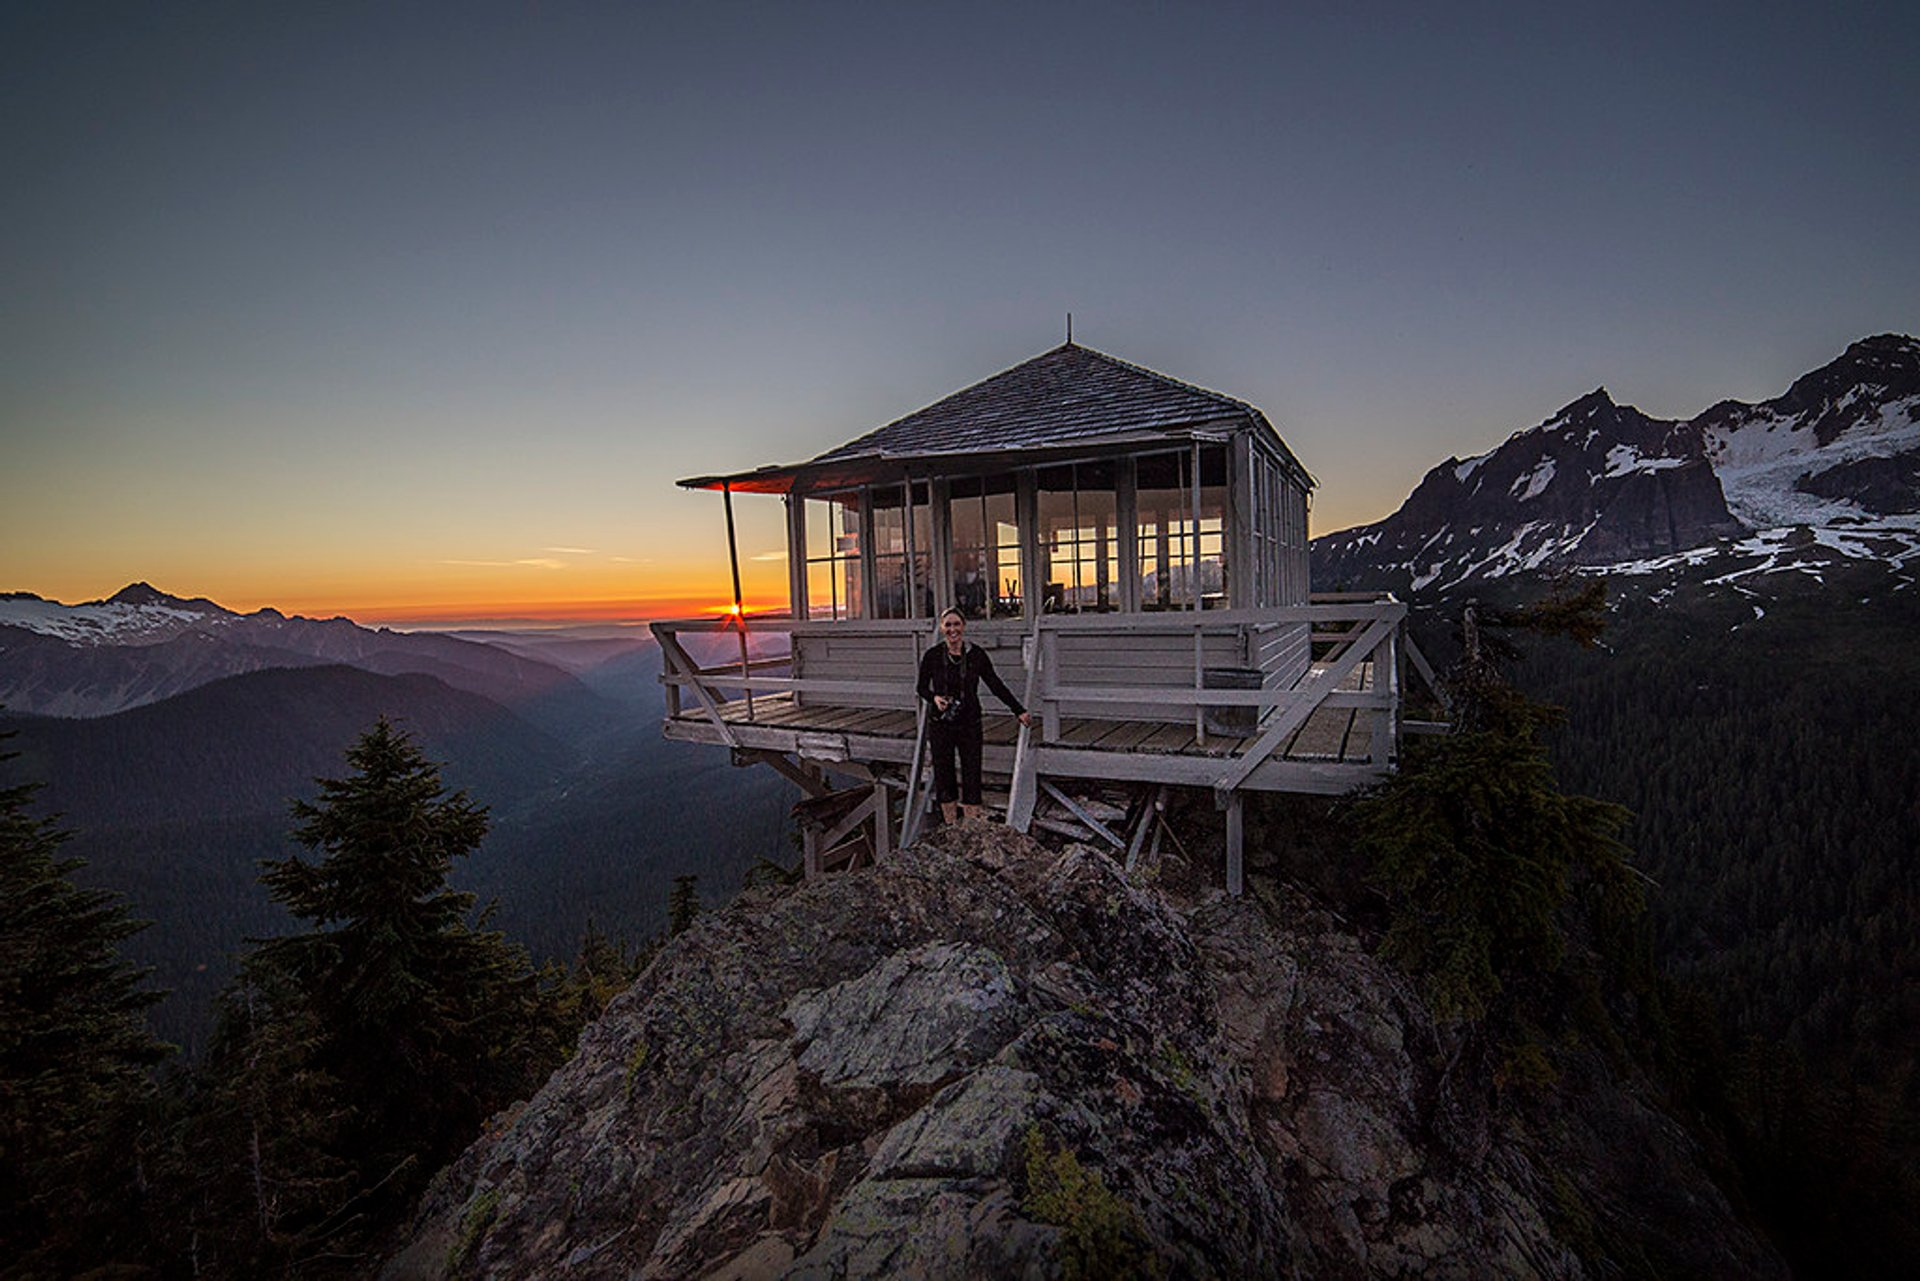 Park Butte Lookout in Washington 2020 - Best Time